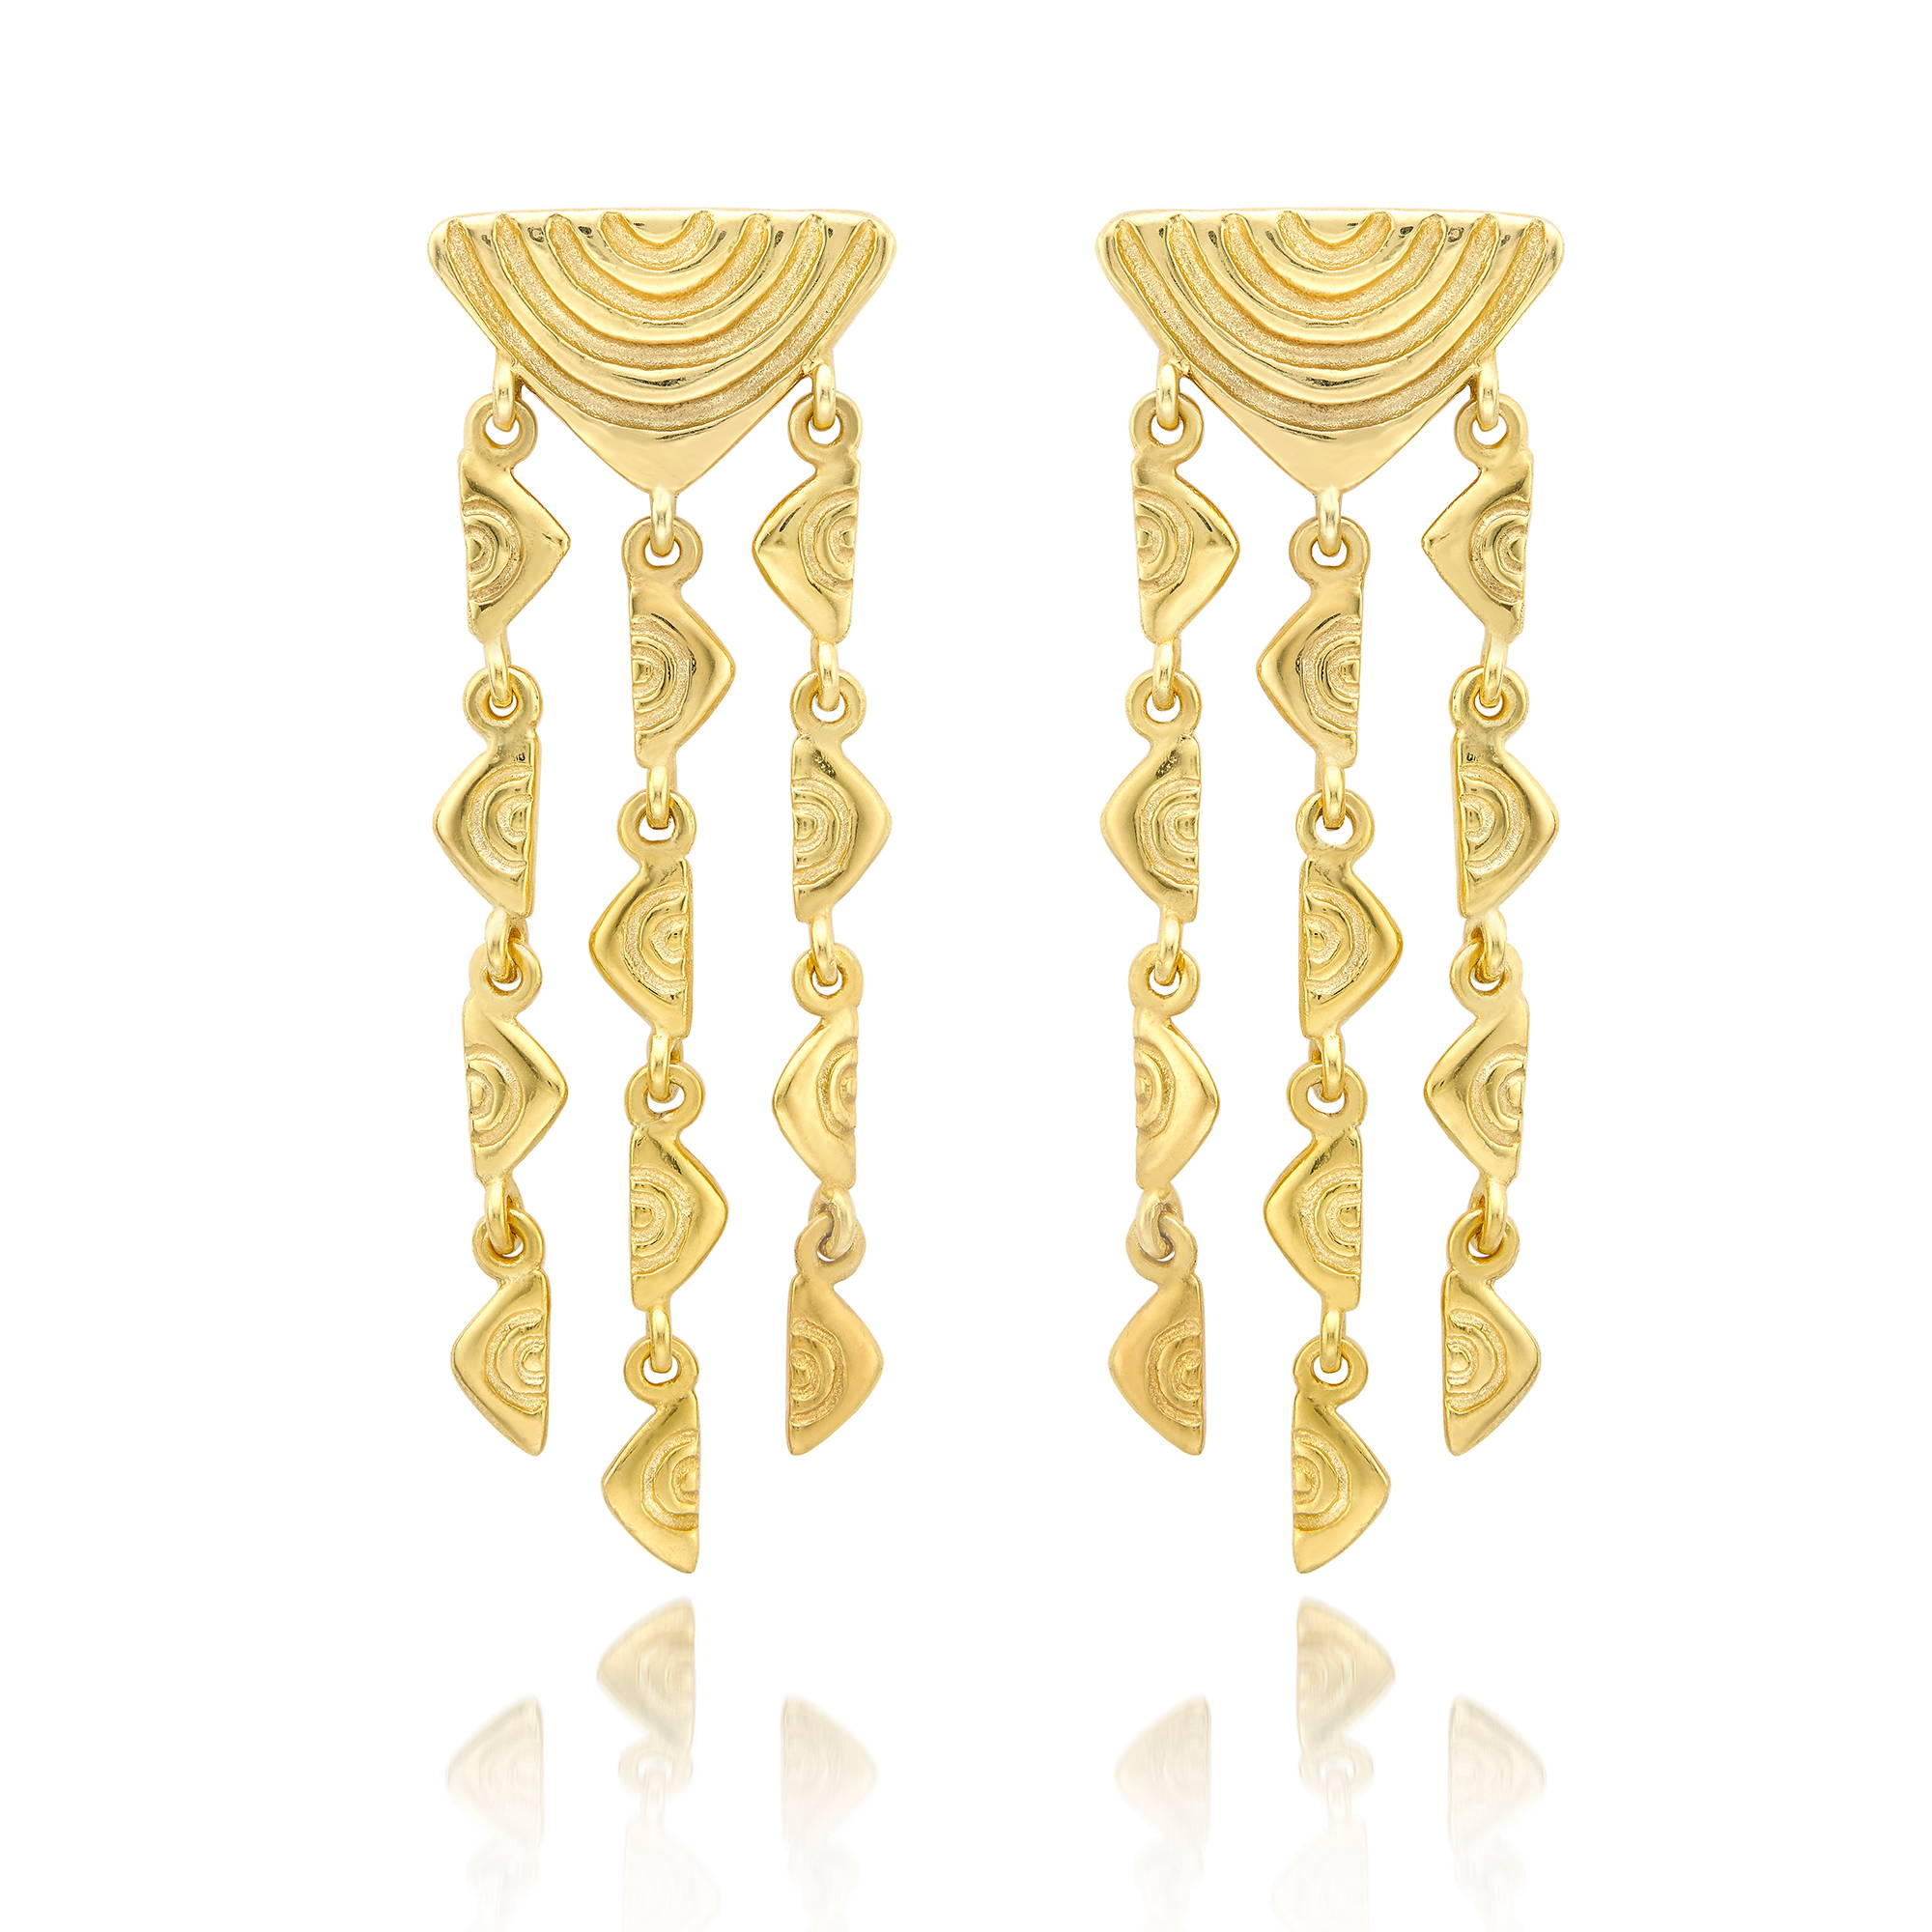 Shop Patrick Mavros Earrings